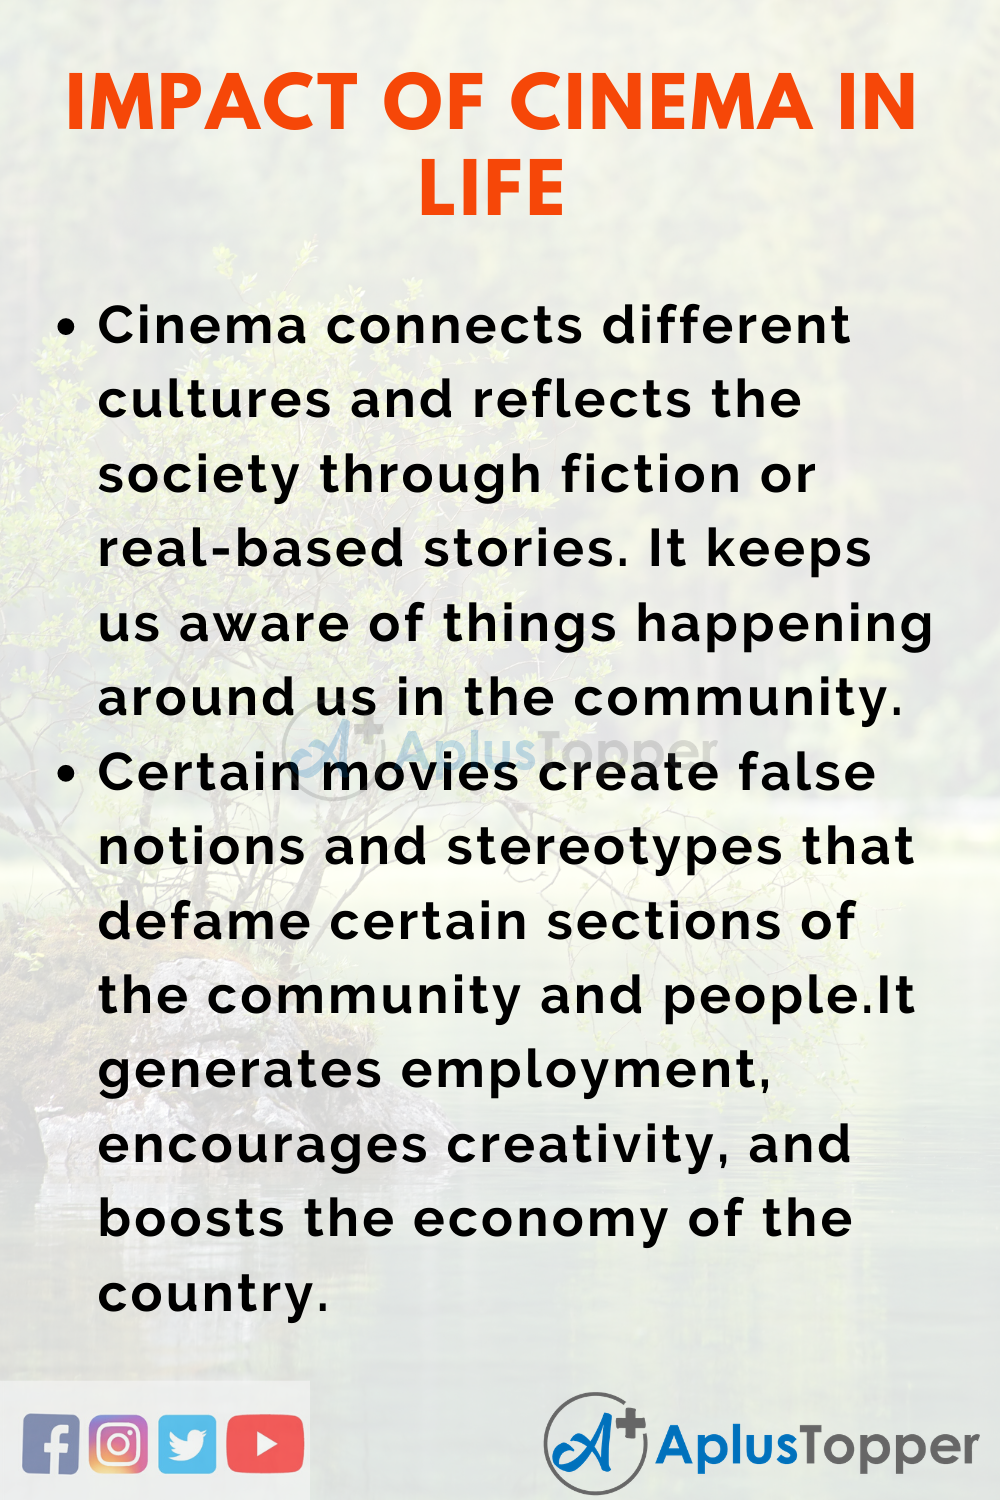 Essay about Impact of Cinema in Life